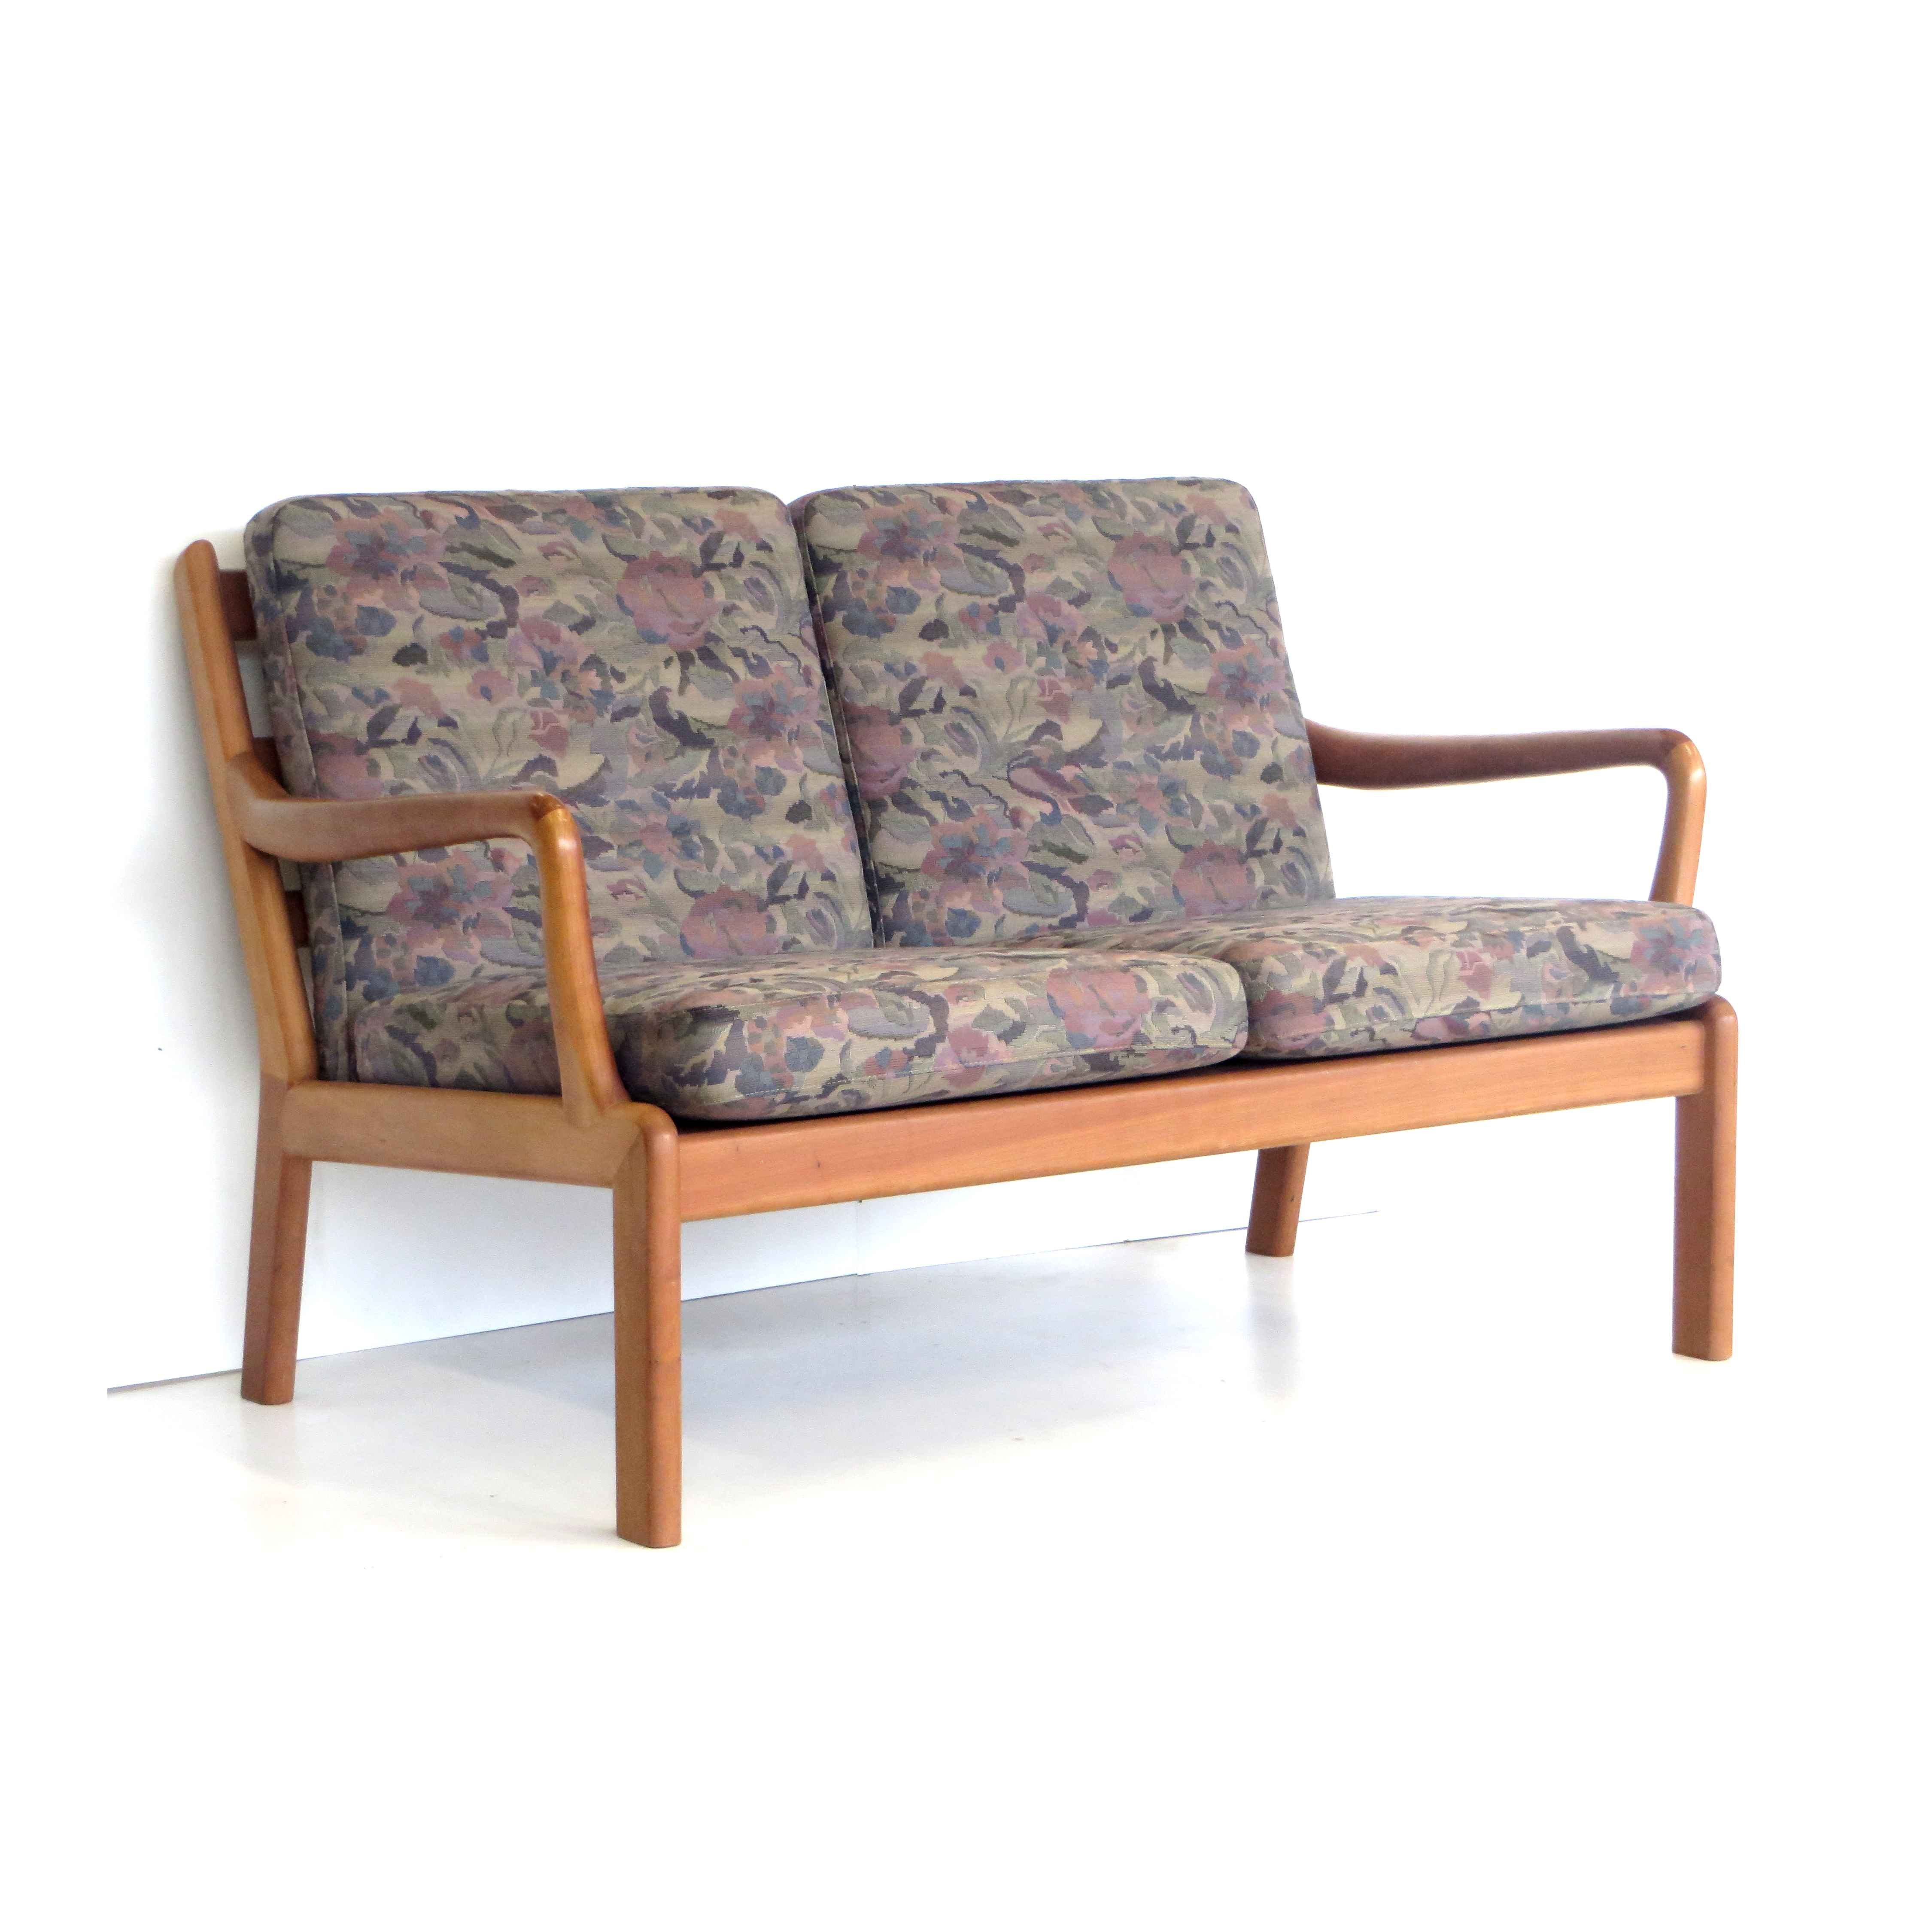 Vintage Two Seater Sofa By L Olsen